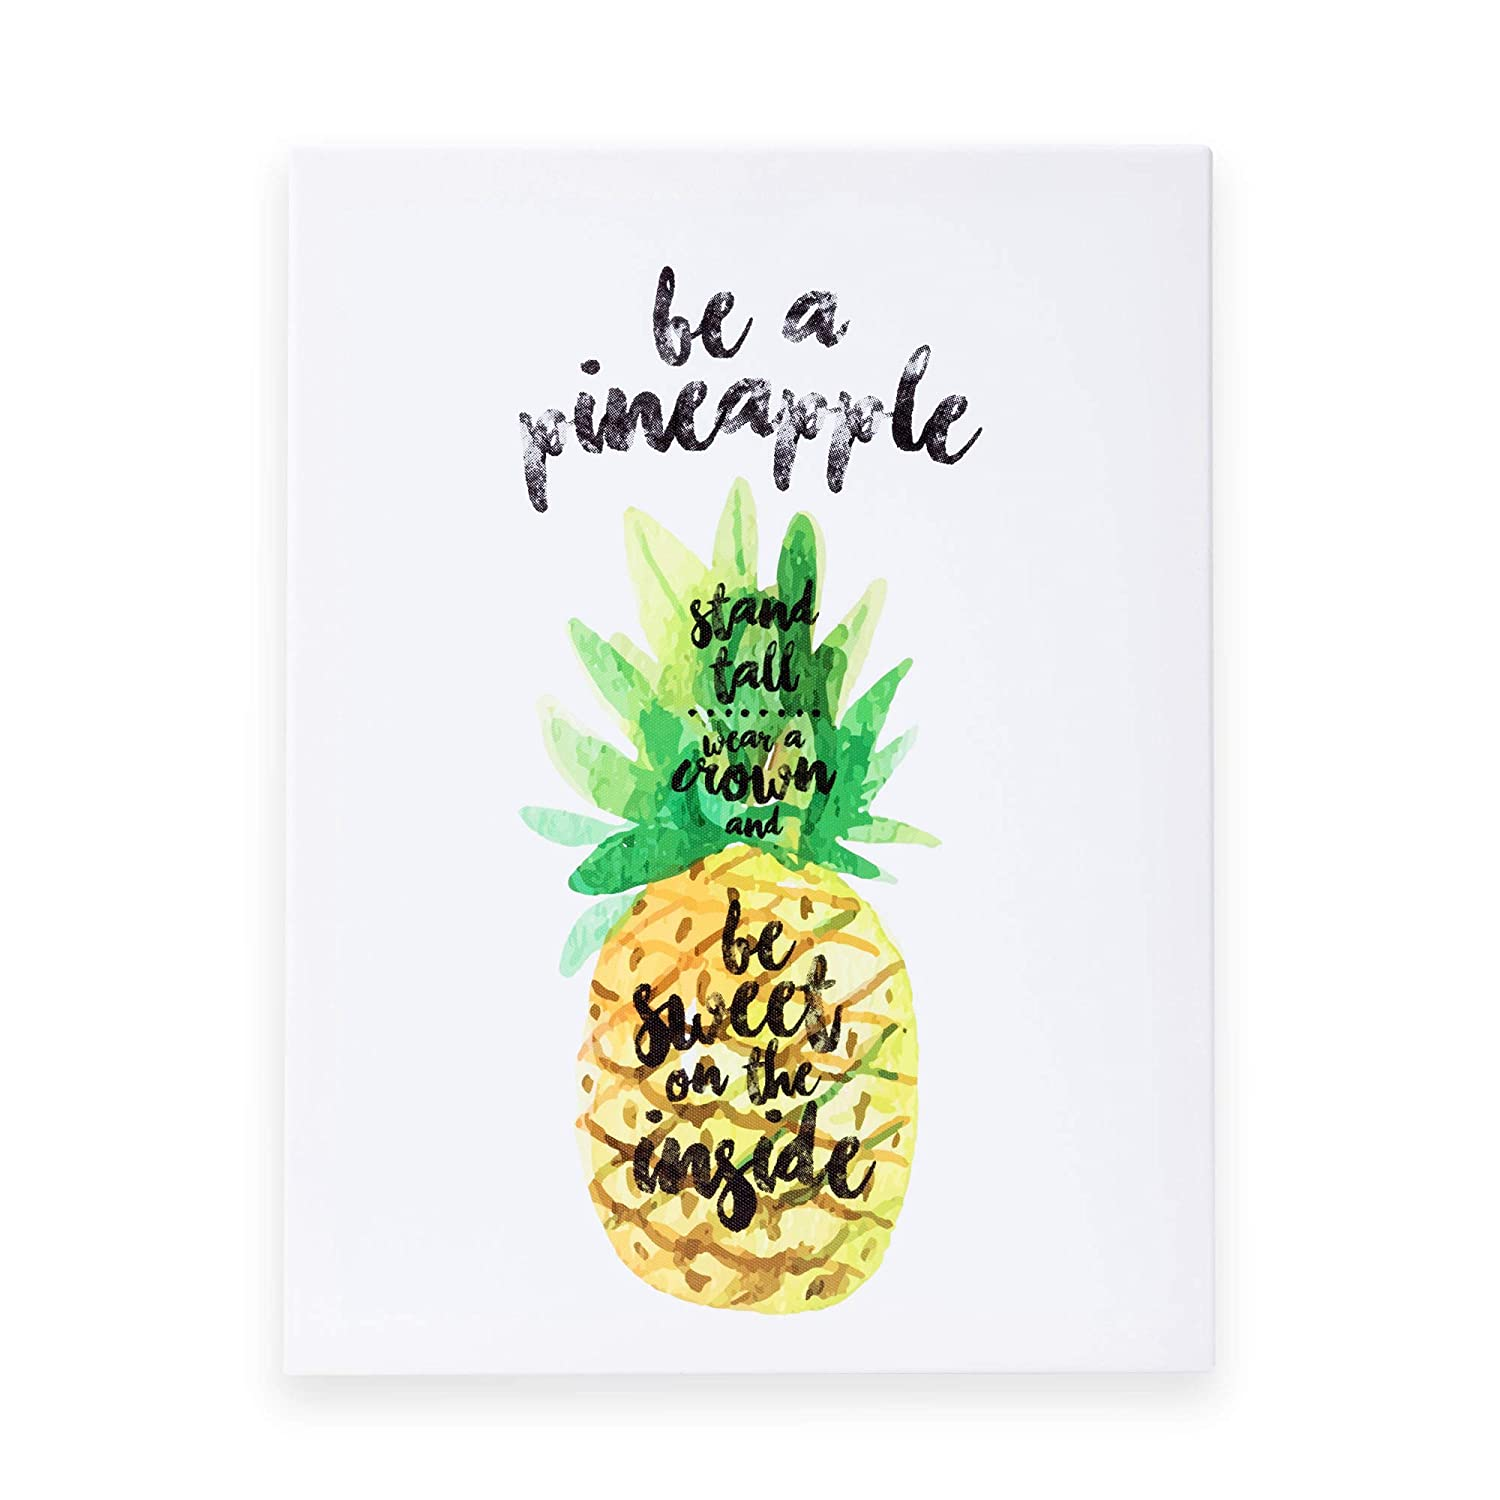 "OUTSHINE 12"" x 16"" Framed Pineapple Canvas Wall Art Positive Quote Hand Drawn Pineapple Kitchen Office Bedroom Hanging Decor 